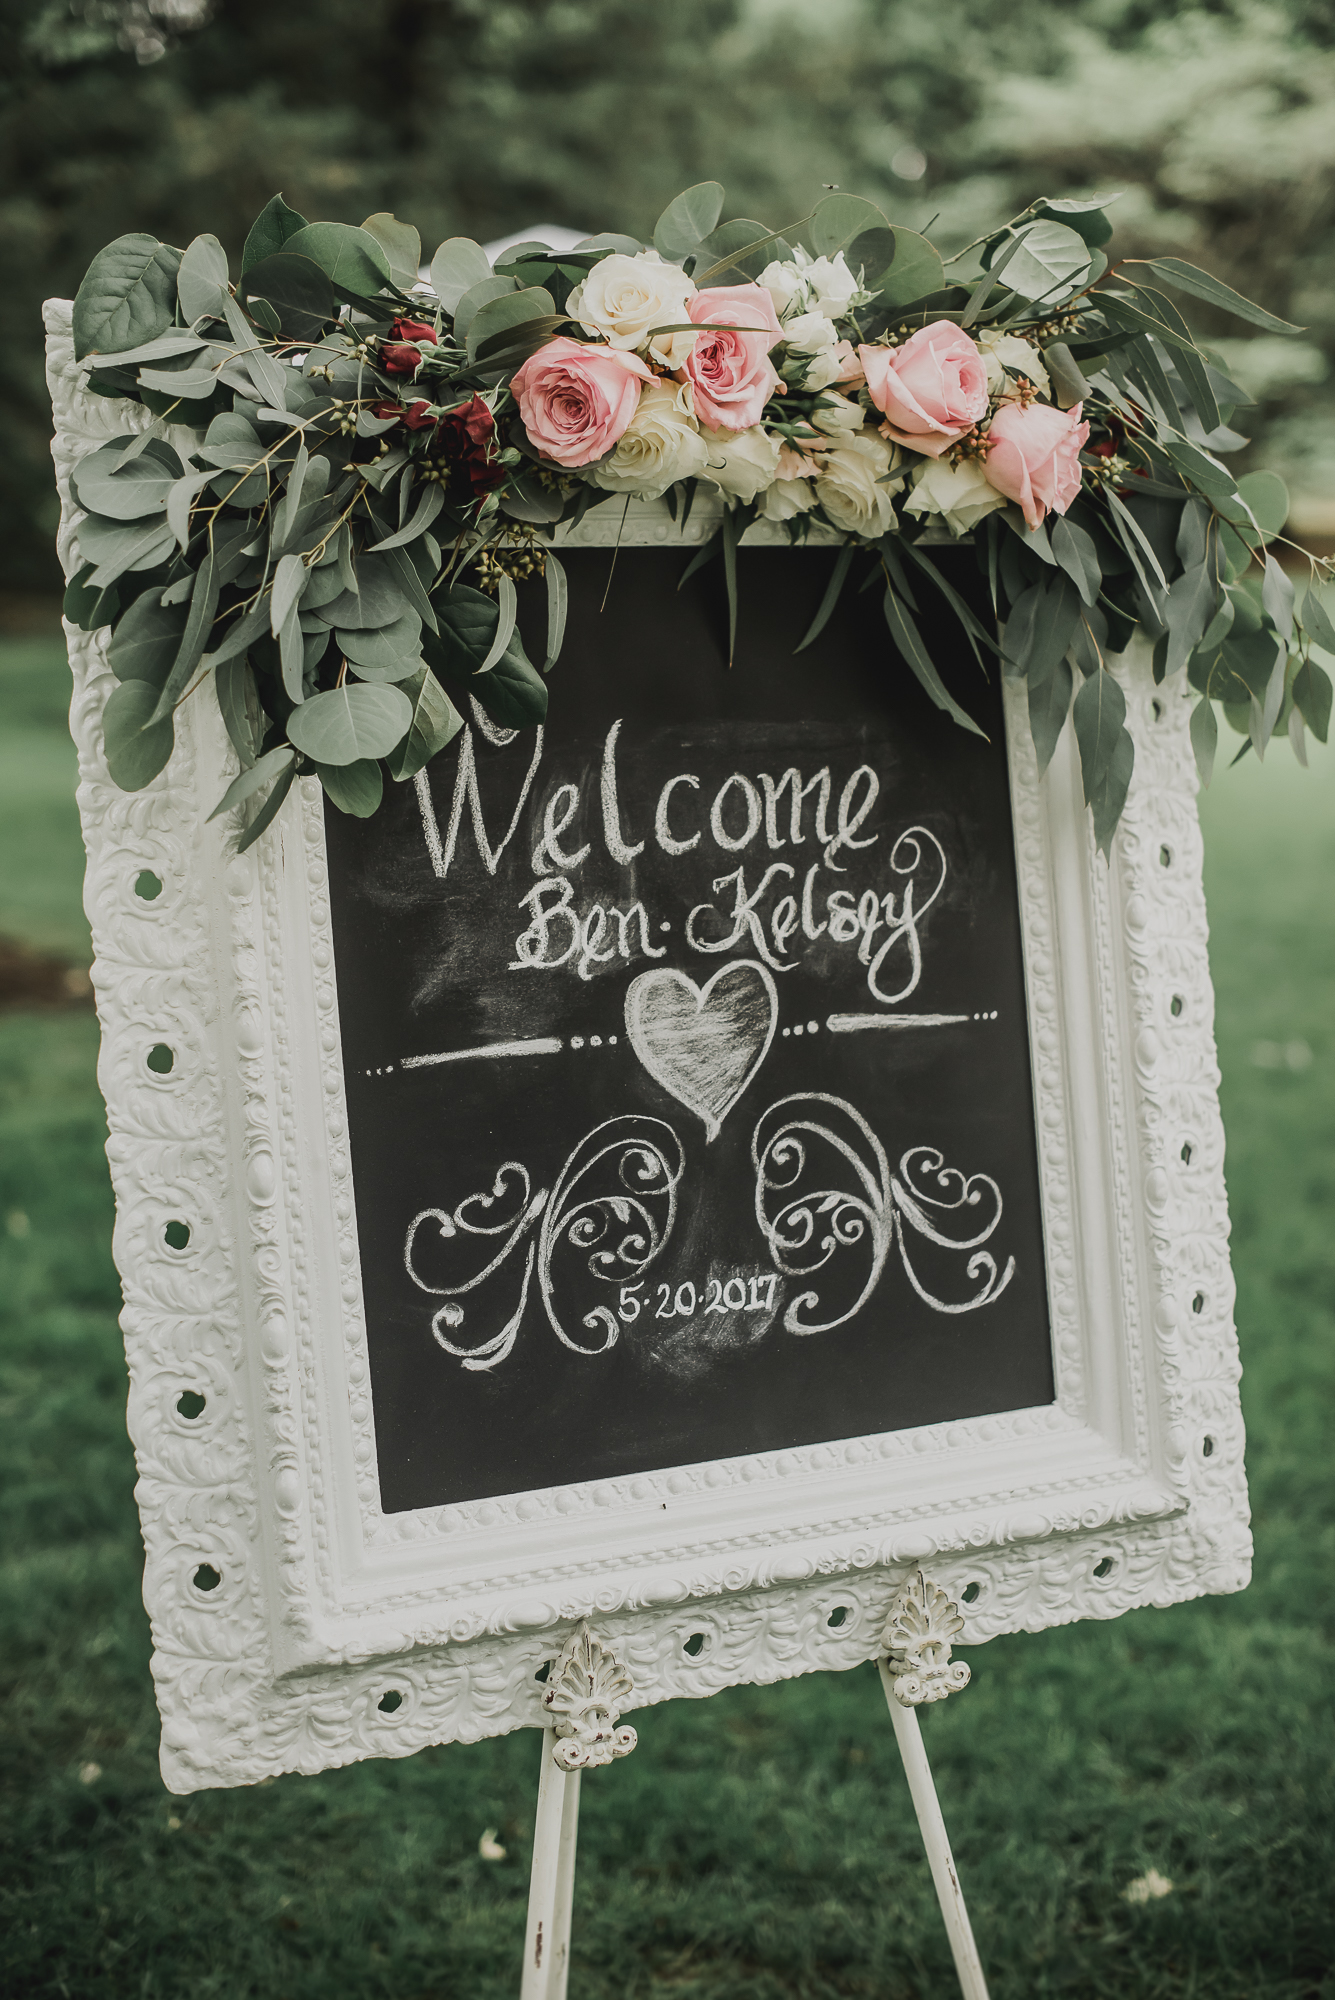 Melissa Cervantes Photography _ Kelsey + Ben Junebug Weddings Submission-44.jpg